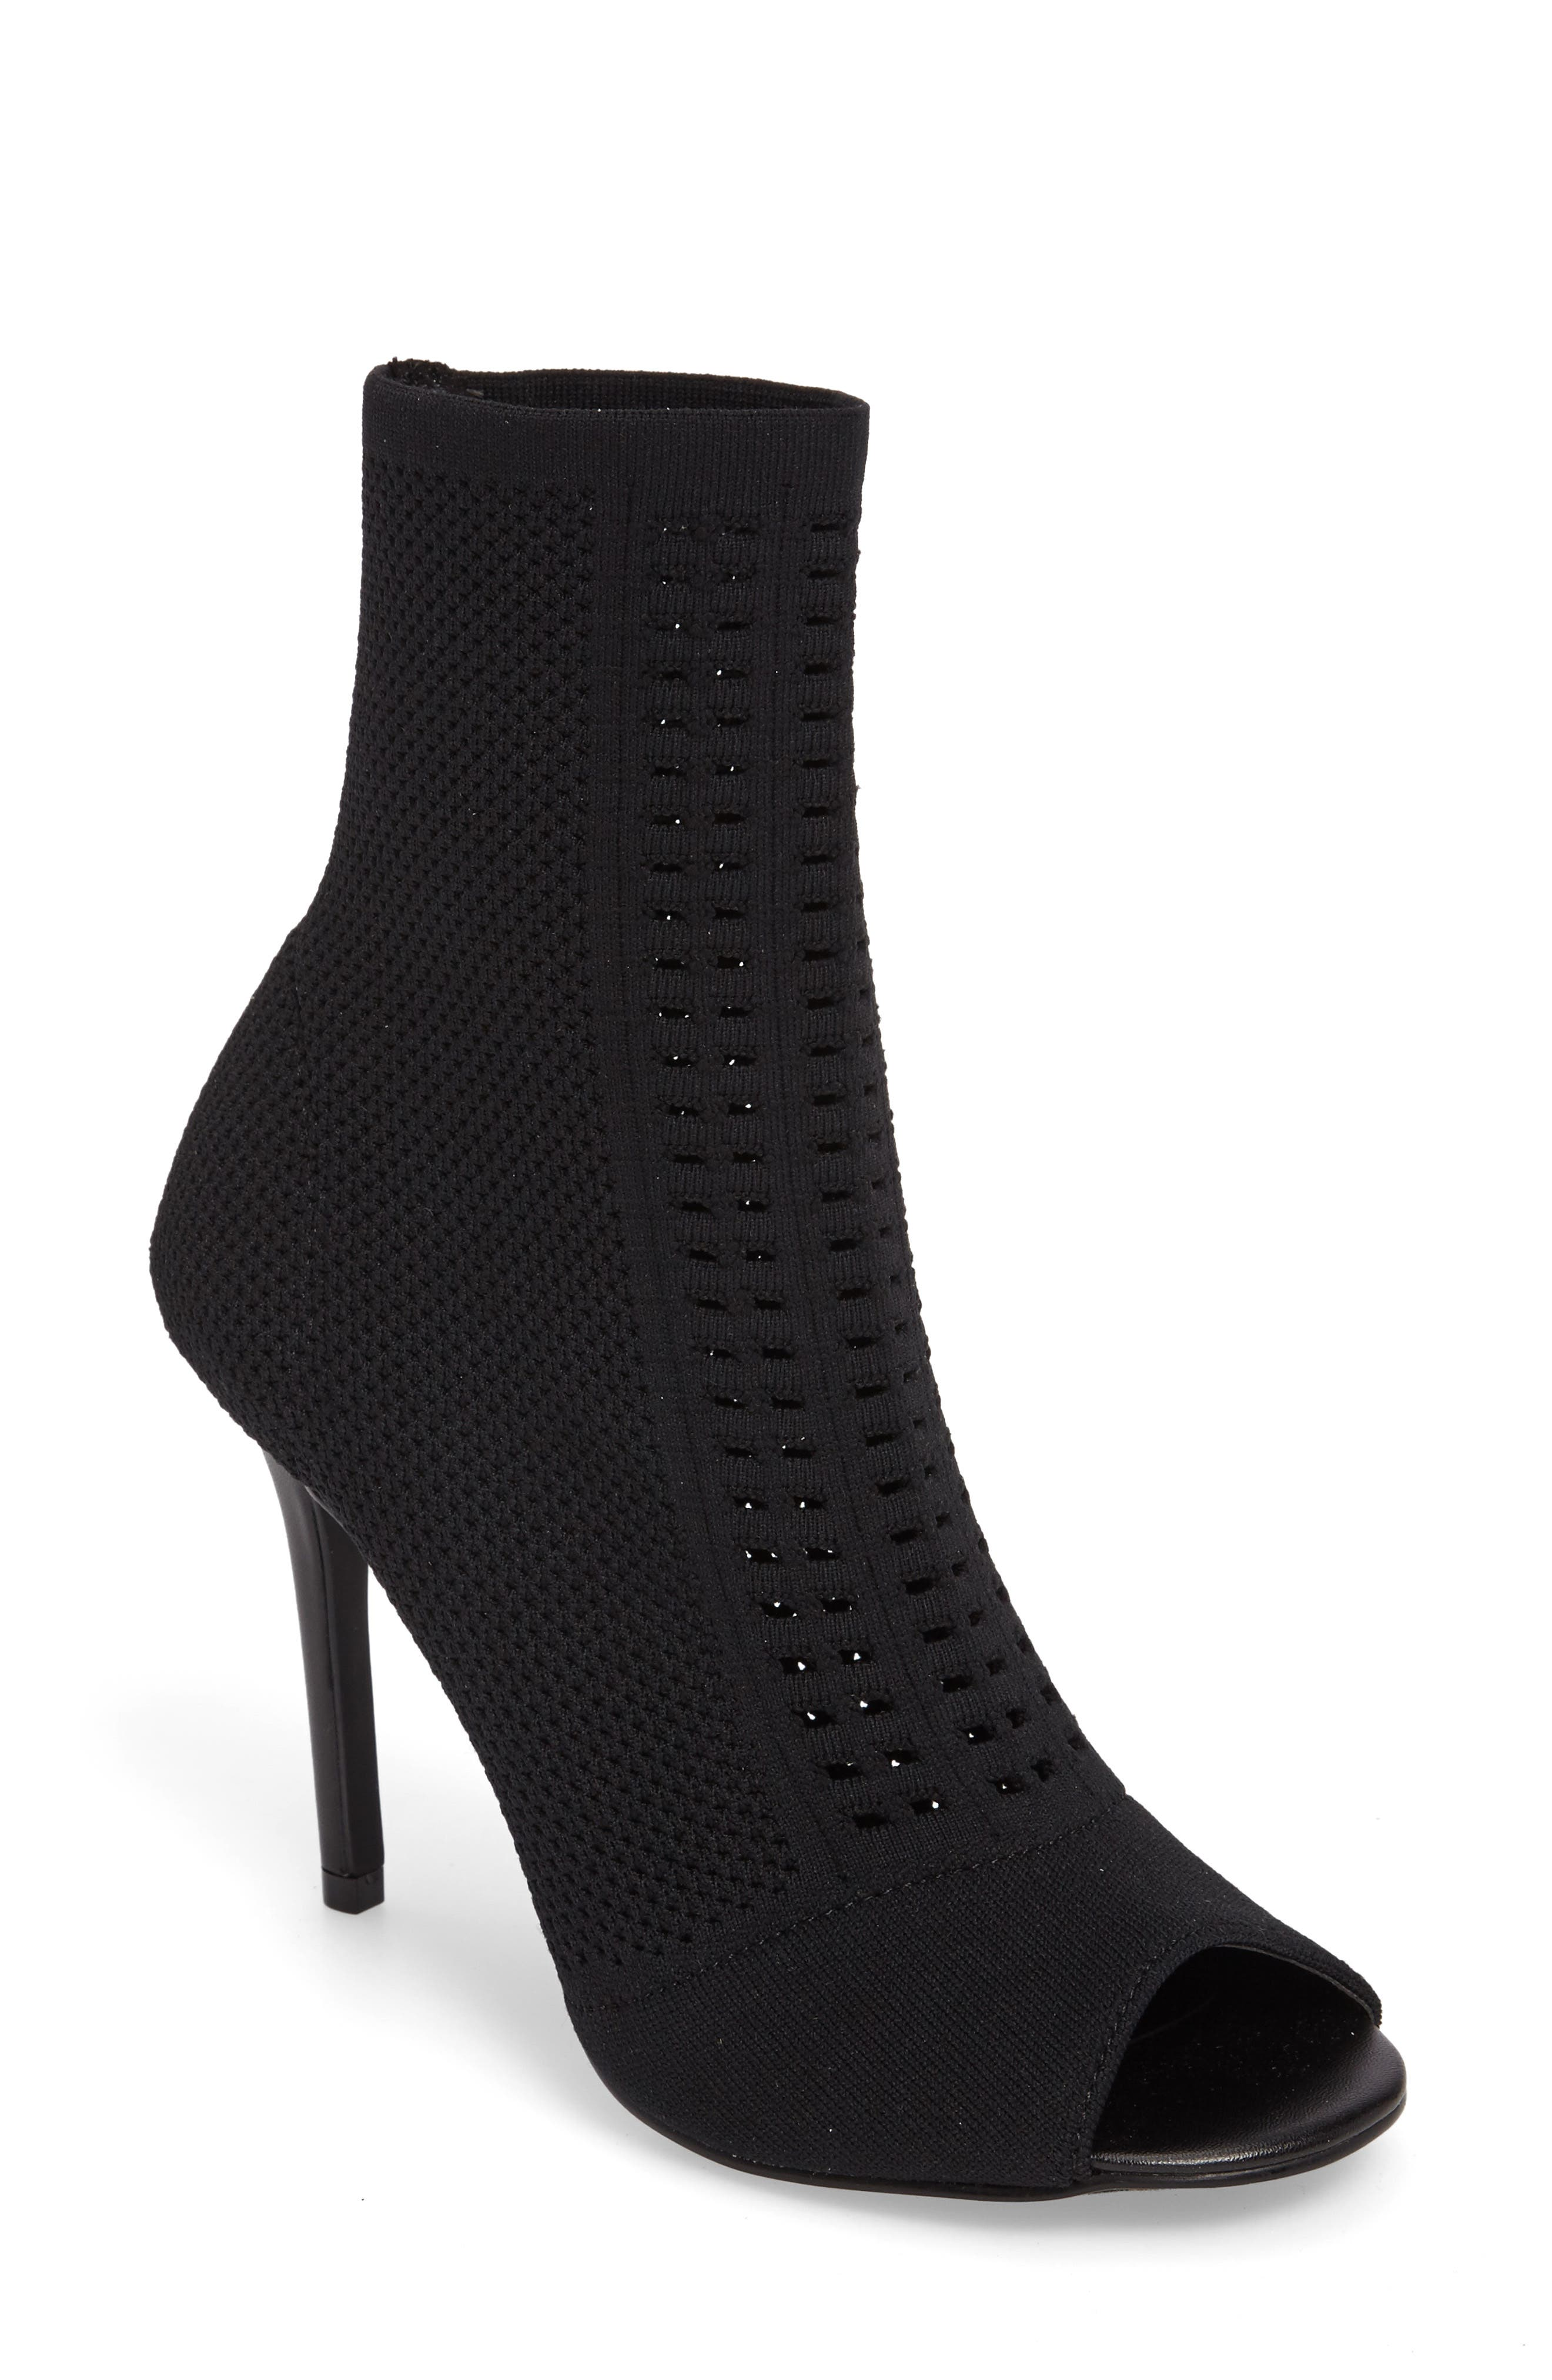 CHARLES BY CHARLES DAVID,                             Rebellious Knit Peep Toe Bootie,                             Main thumbnail 1, color,                             001